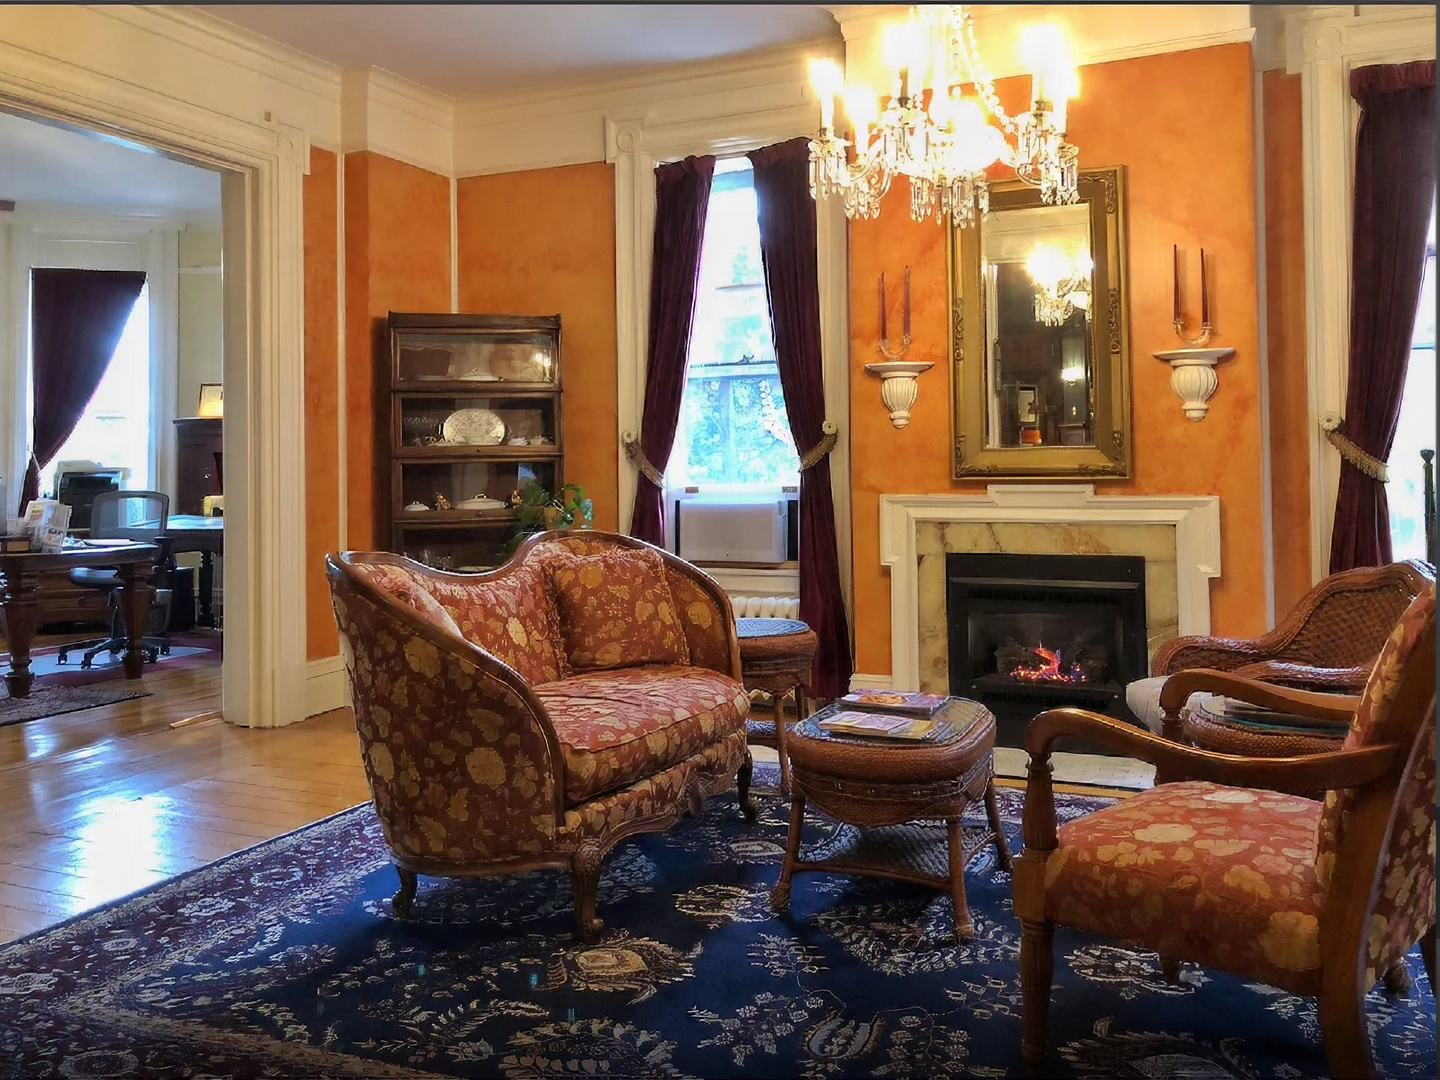 A living room filled with furniture and a fireplace at Willard Street Inn.